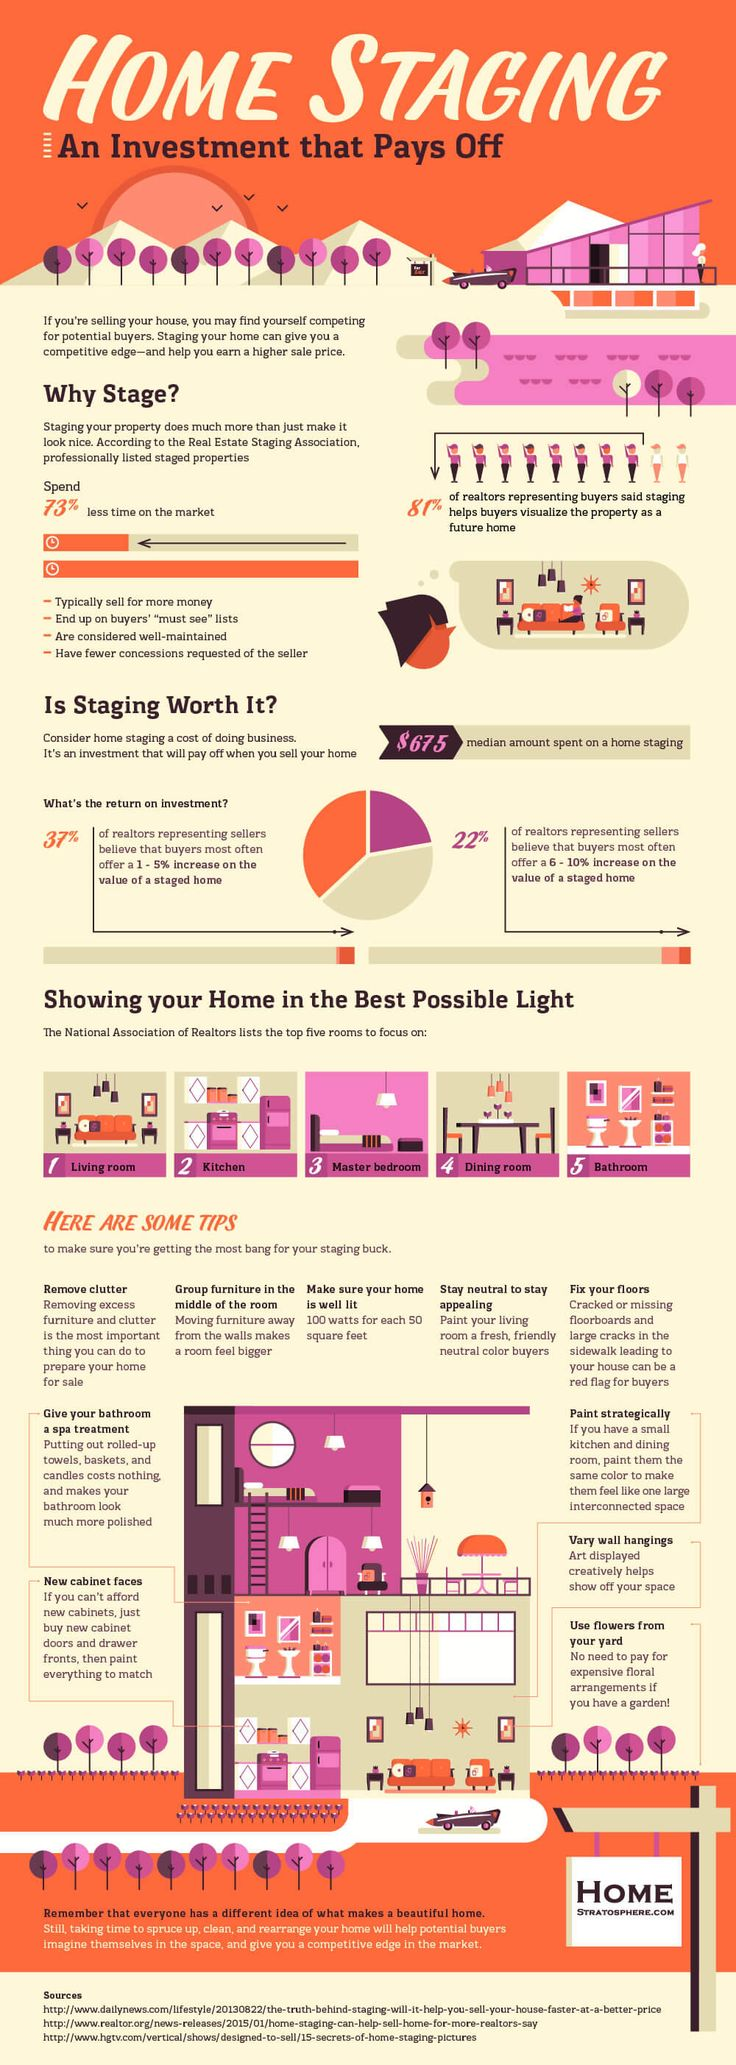 Home Staging Benefits and Tips - Infographic